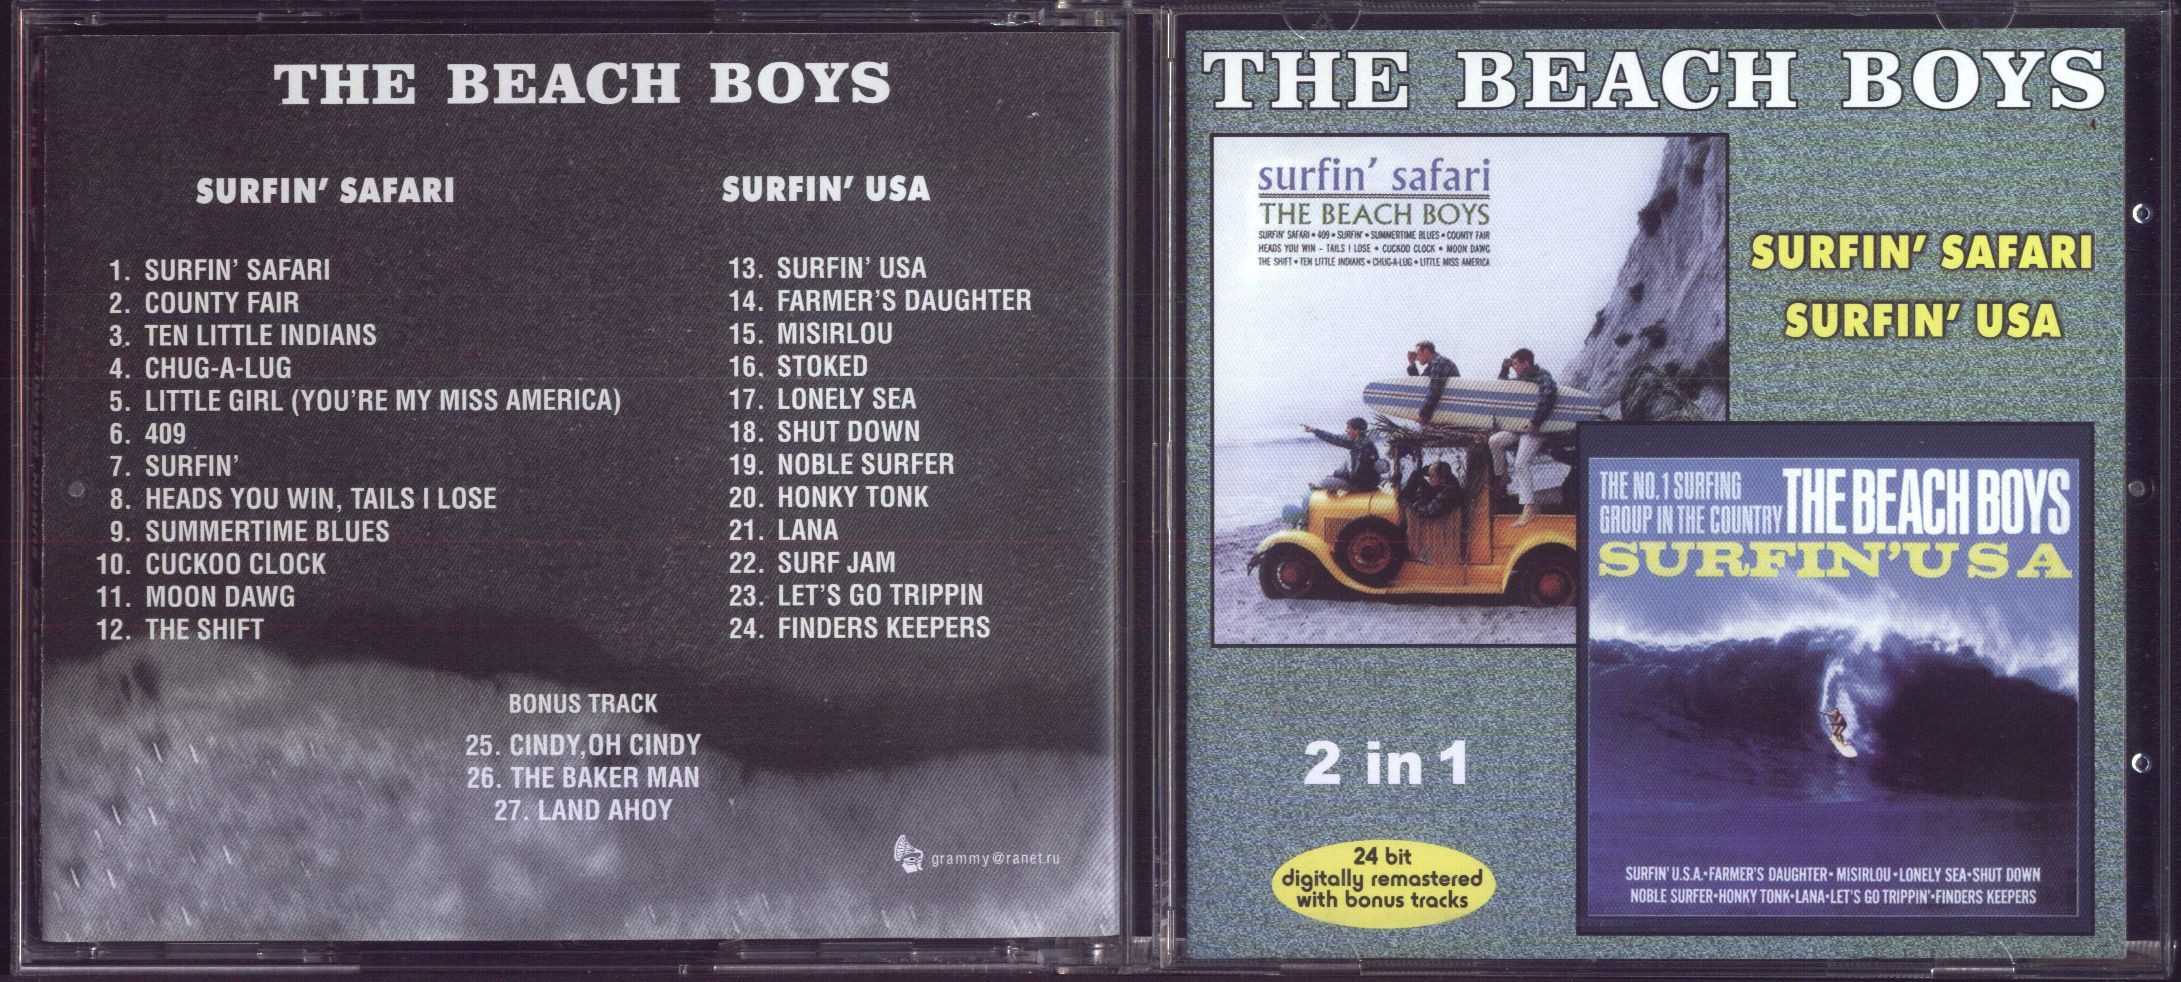 Surfin Safari Surfin U S A 3bonus Trk 2lp S In 1cd Remastered By Beach Boys The Cd With Apexmusic